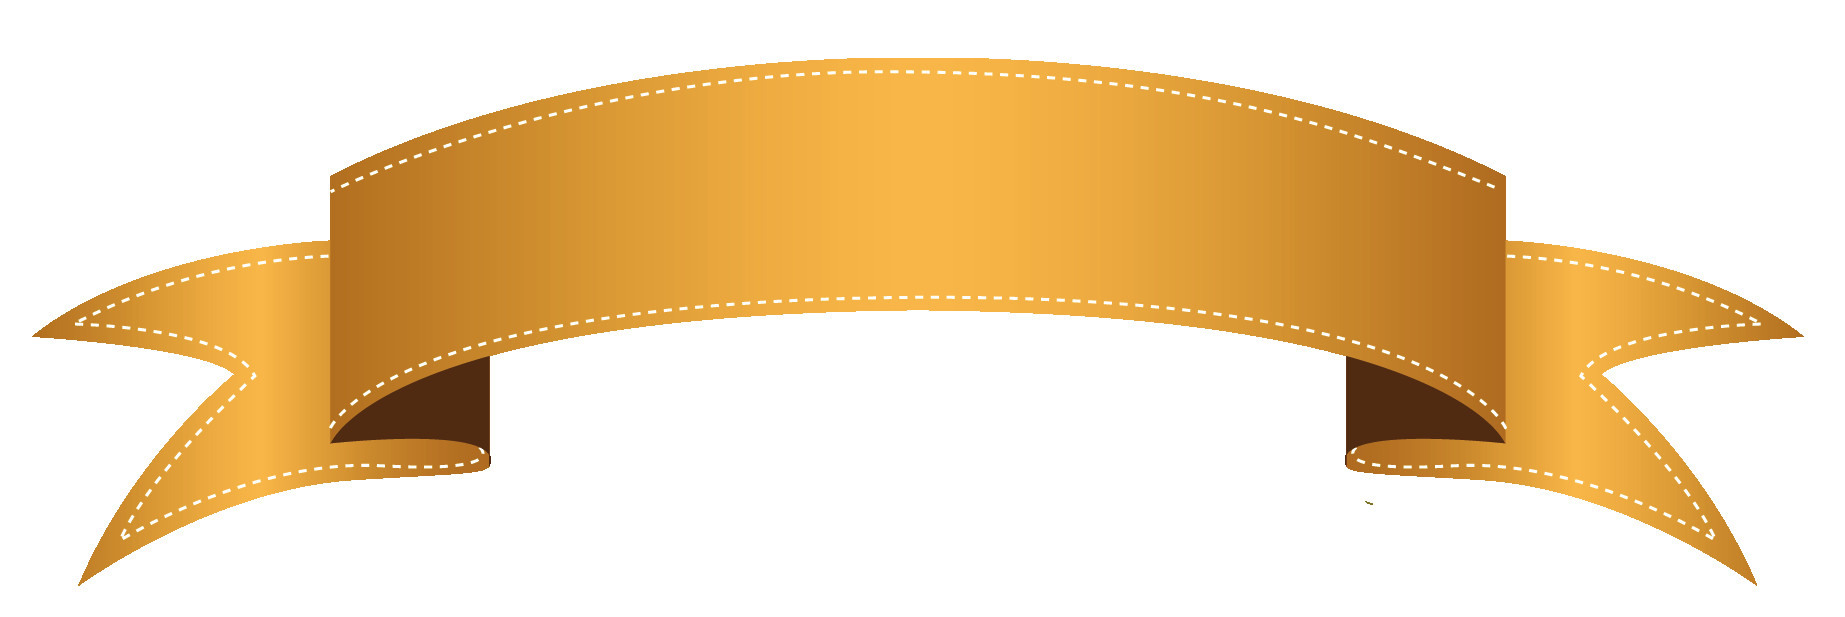 Awesome clipart transparent. Ribbon banner png orange